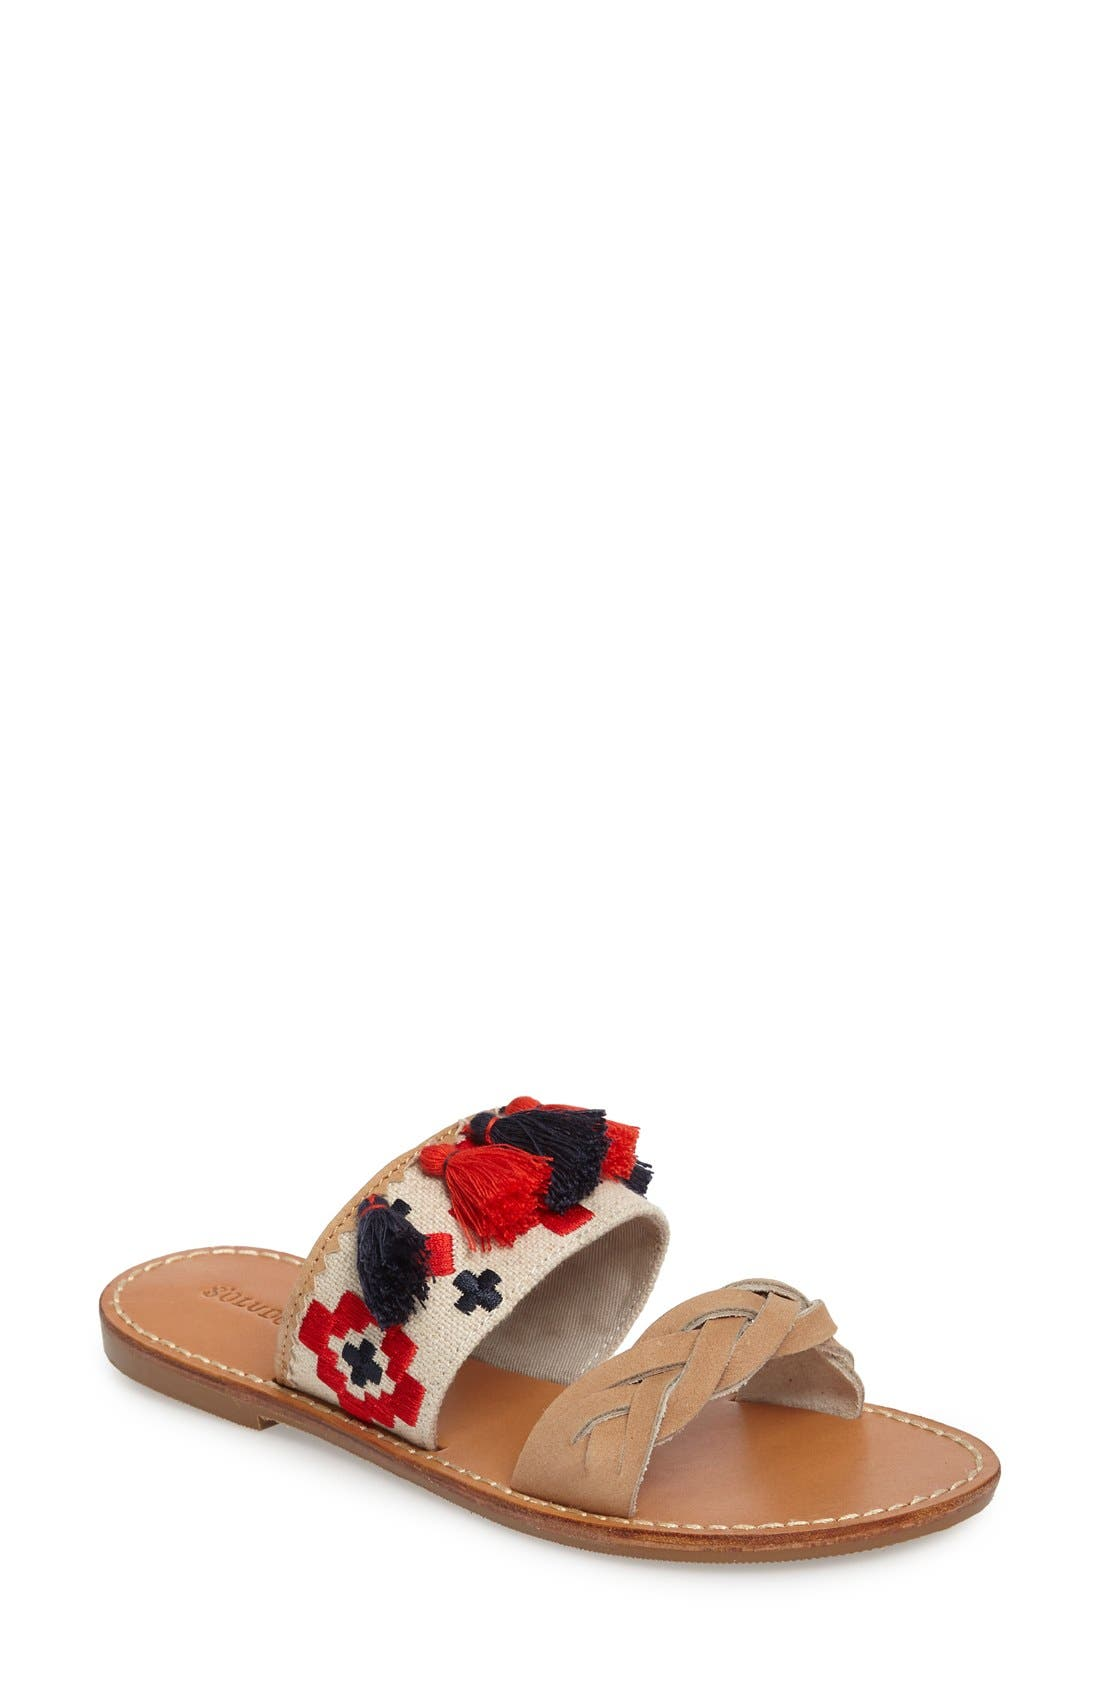 Main Image - Soludus Embroidered Slide Sandal (Women)